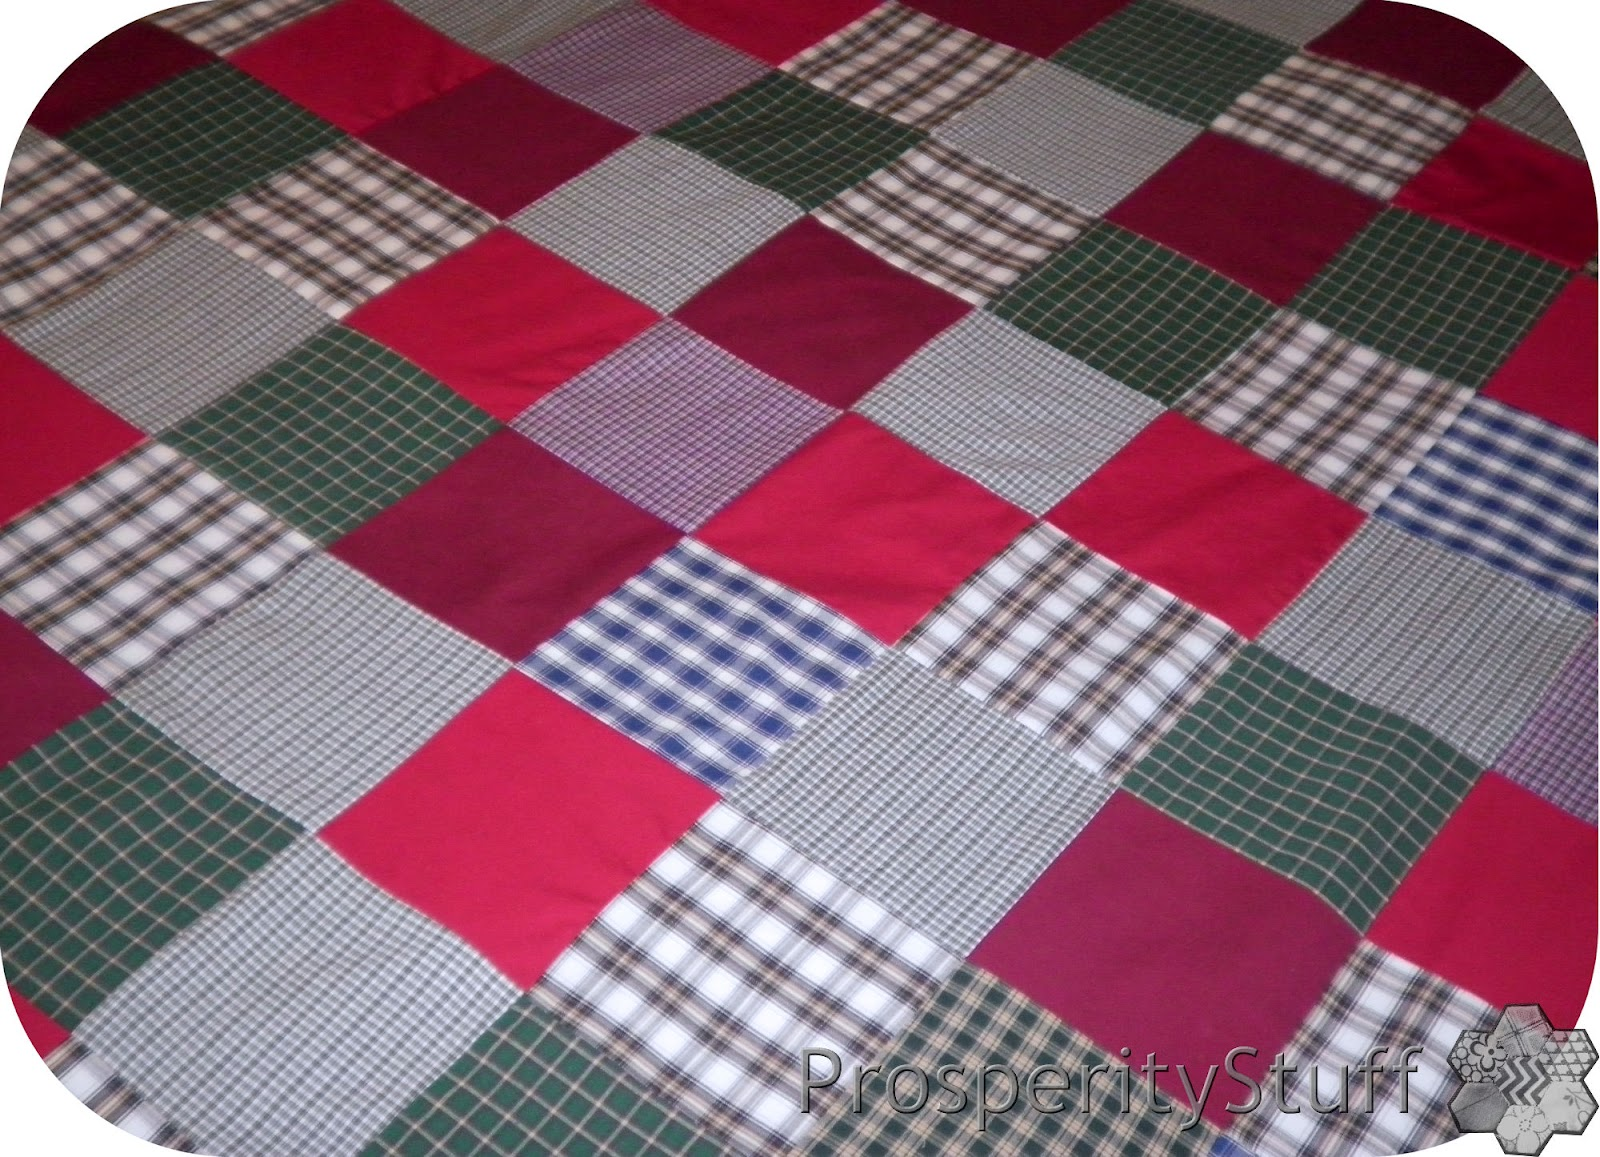 Quilt Patterns For Homespun Fabric : ProsperityStuff Quilts: Homespun Plaids & Reds